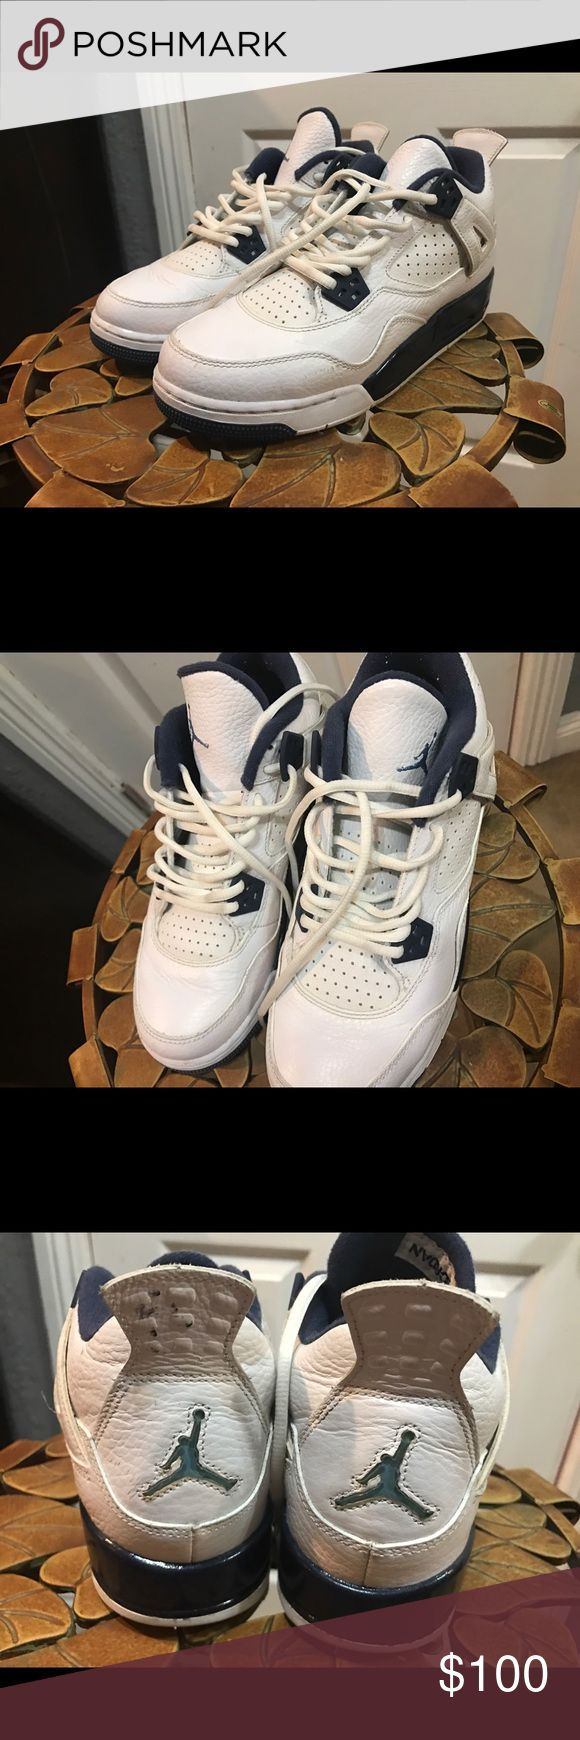 Blue and white Jordan's Kids size Midnight blue/navy & White Jordan 4s. Worn a few times, but still I'm really good condition, just needs a little cleaning. Can be worn women's size 7.5/8. Jordan Shoes Sneakers